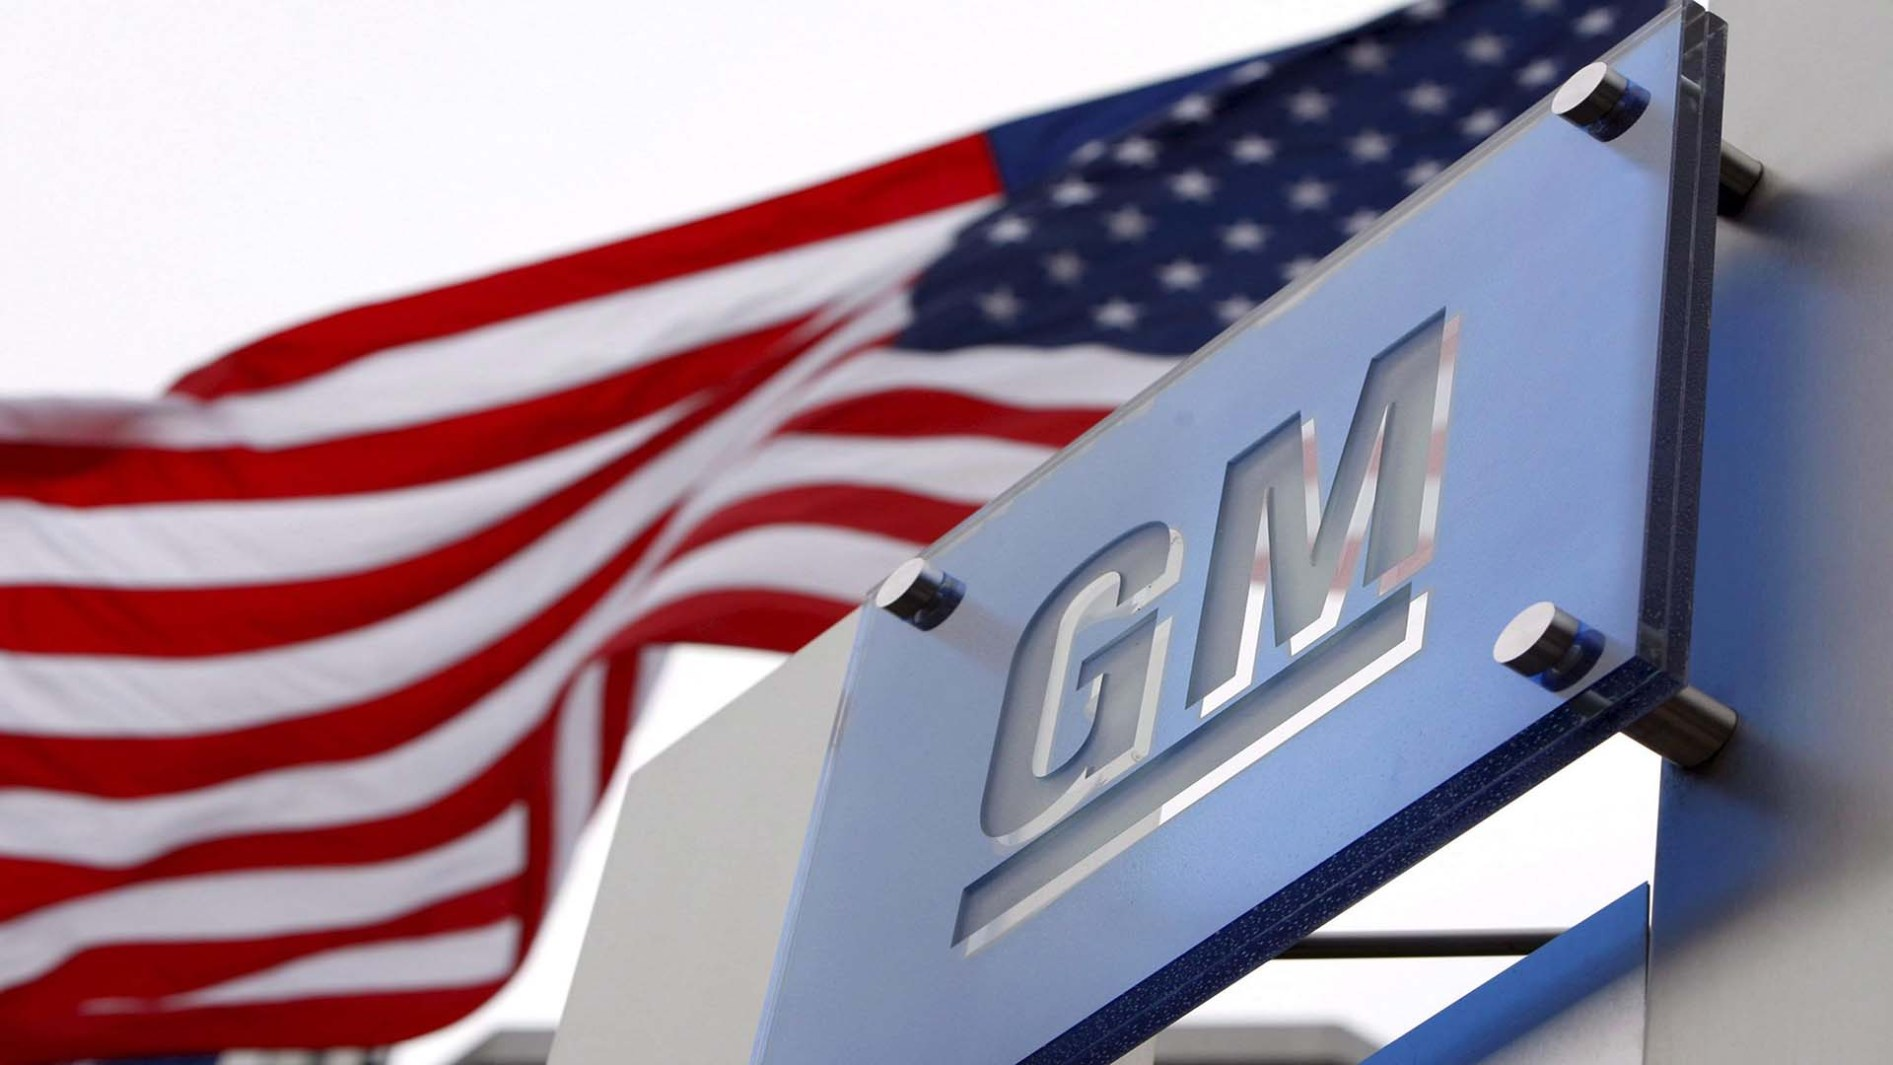 GM spent $10B on stock buybacks, then cut jobs to save $4.5B